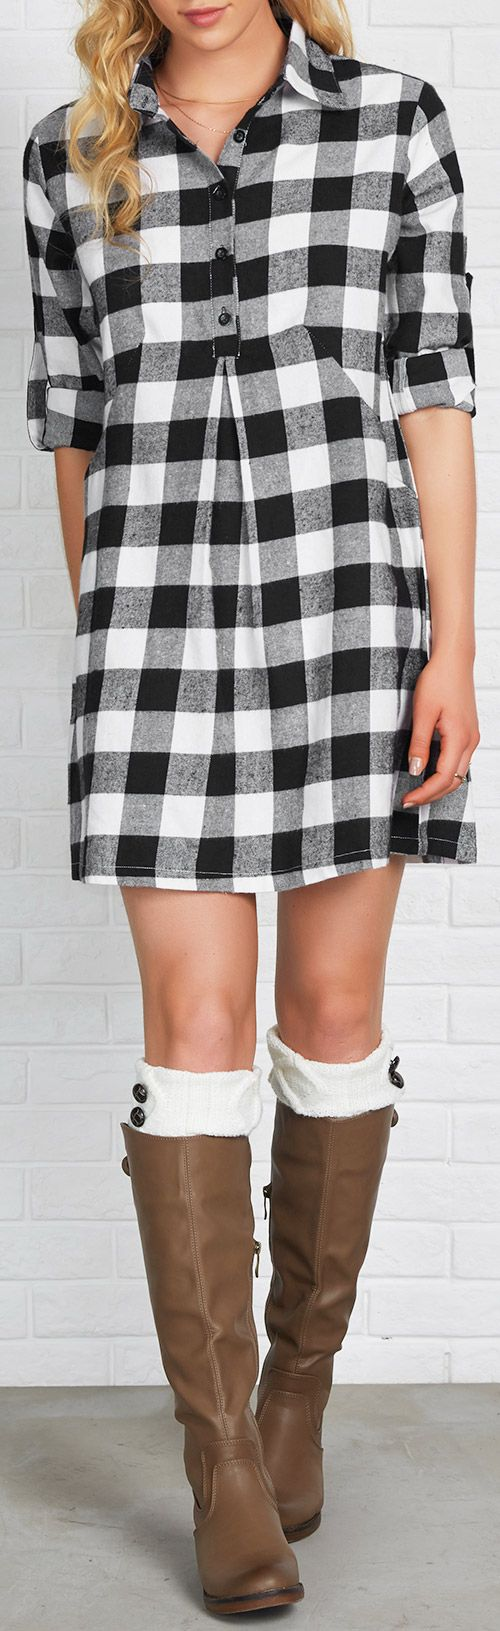 Enjoy 10% Off for pre-order! $24.99 Only with Free shipping as well! This cute plaid shirt dress features button up&lapel collar design! Take this casual work clothes at Cupshe.com